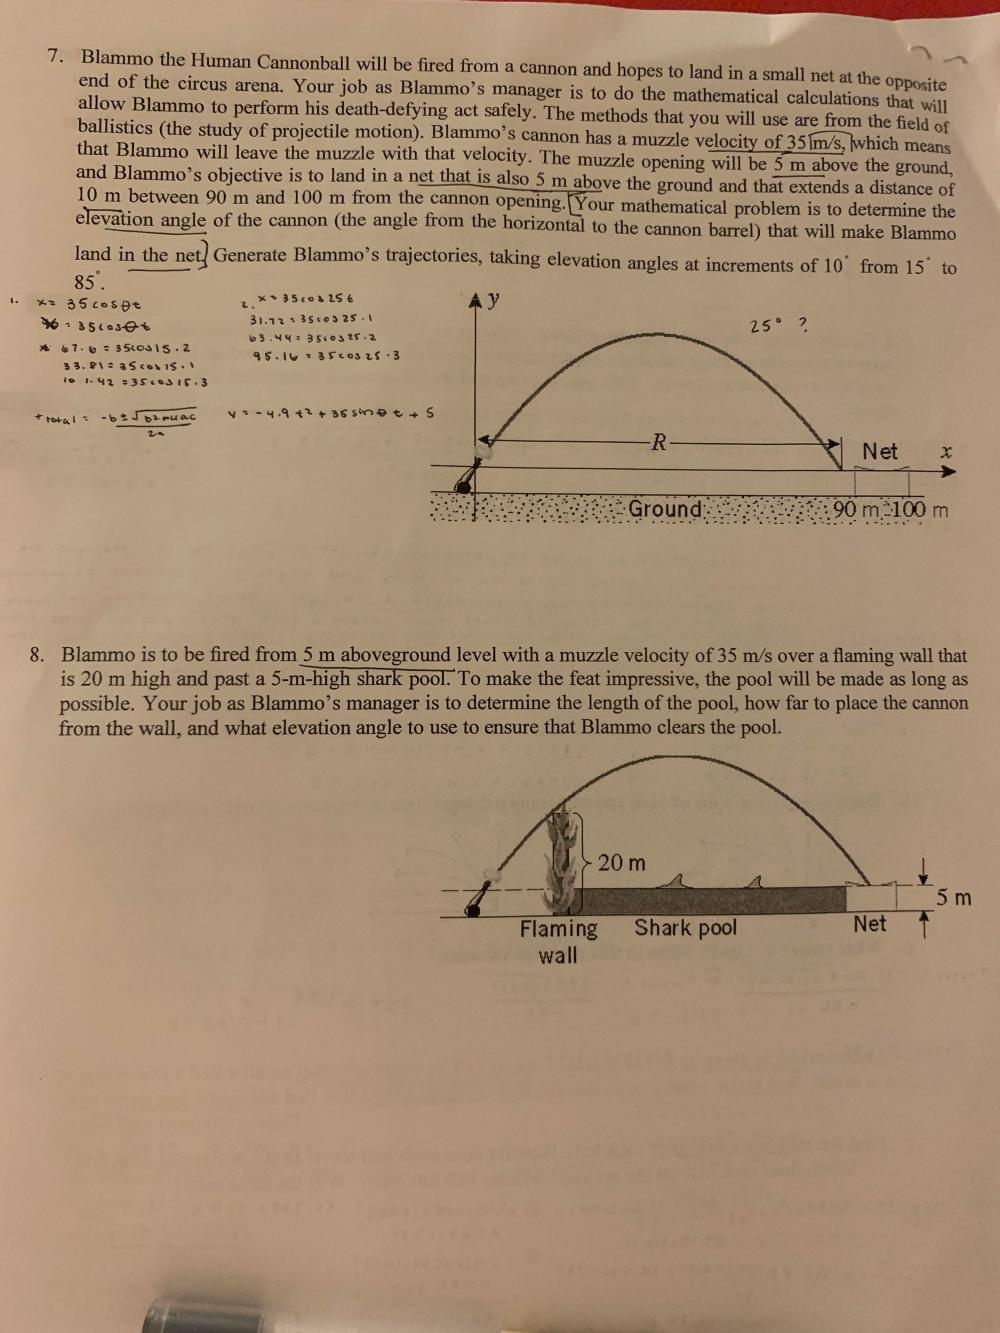 medium resolution of Grade 10 Precalc How to solve this Parametric Equation Word Problem? I'm  stumped on the process (ex. I don't understand what I'm supposed to be  finding...Do I guess and check? or is